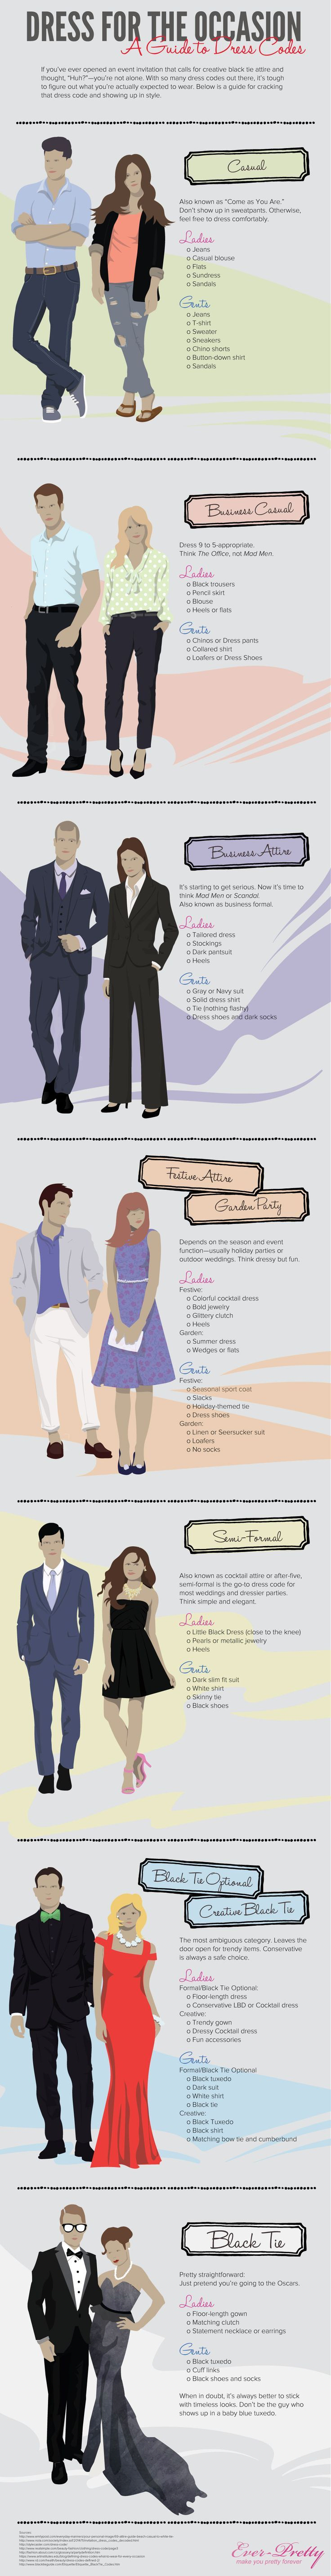 Dress for the Occasion: A Guide to Dress Codes - Tipsographic